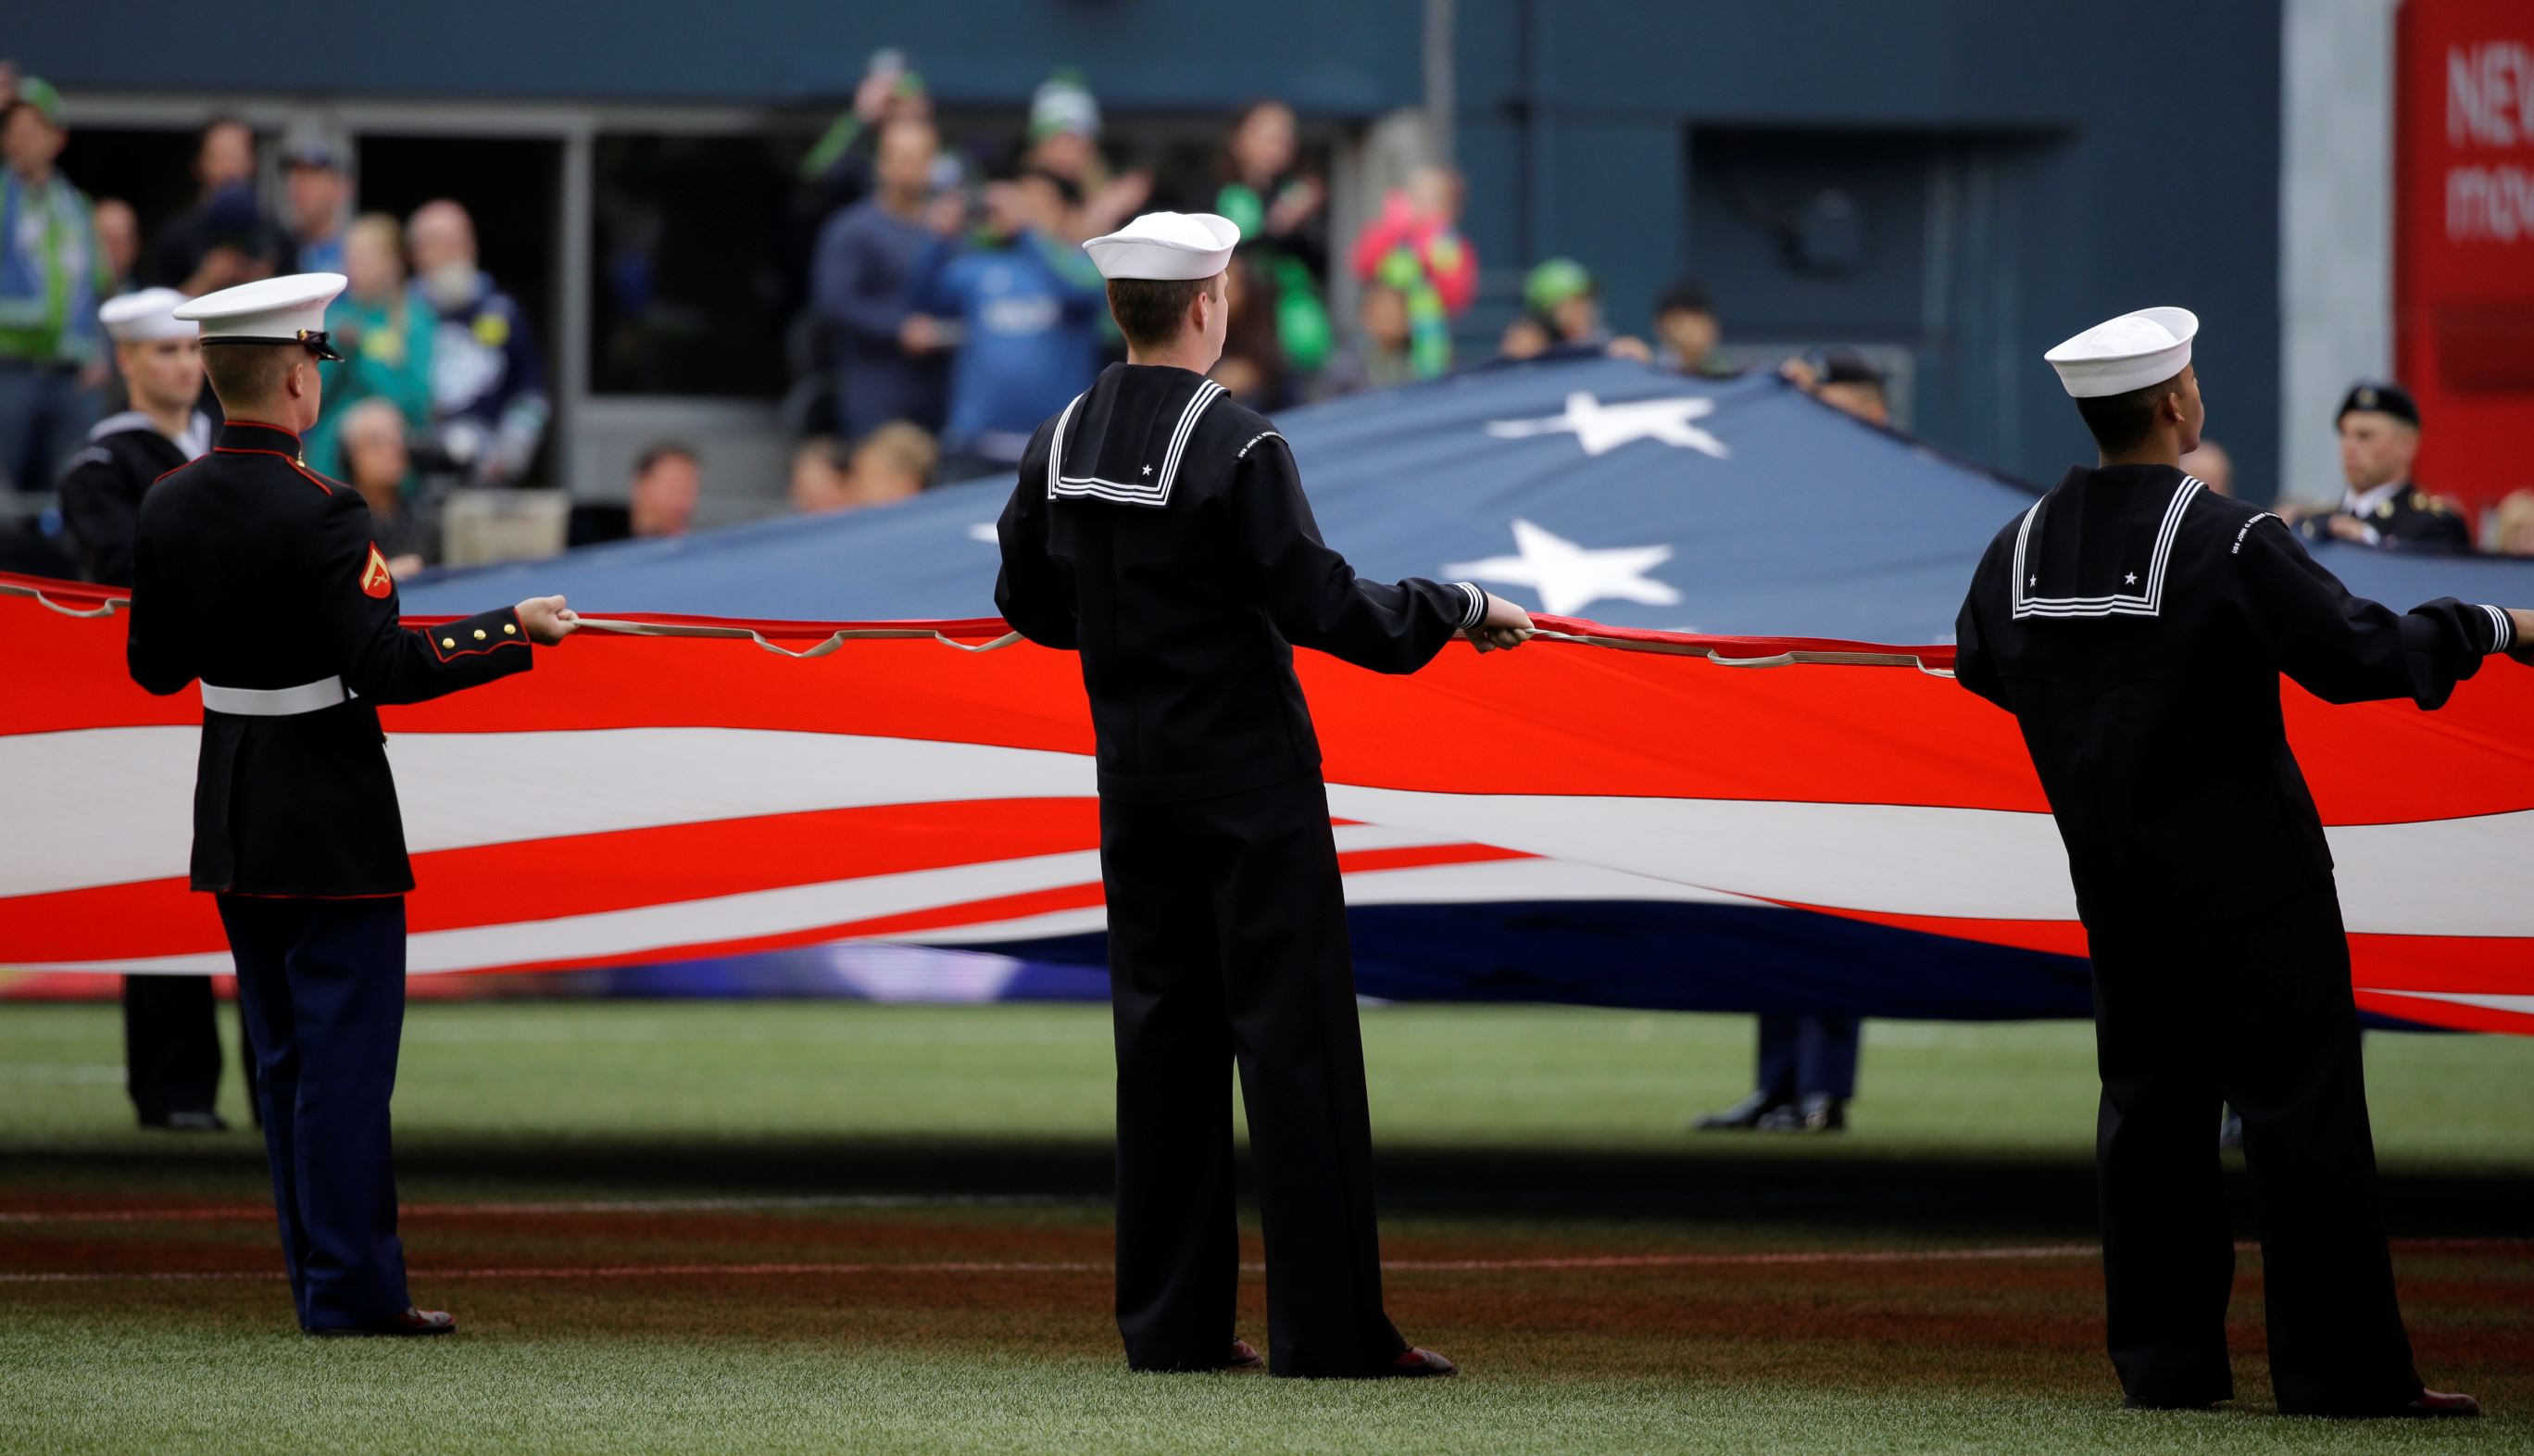 Members of the military hold a giant U.S. flag before an MLS soccer match between the Seattle Sounders and Sporting Kansas City, in Seattle, May 23, 2015.